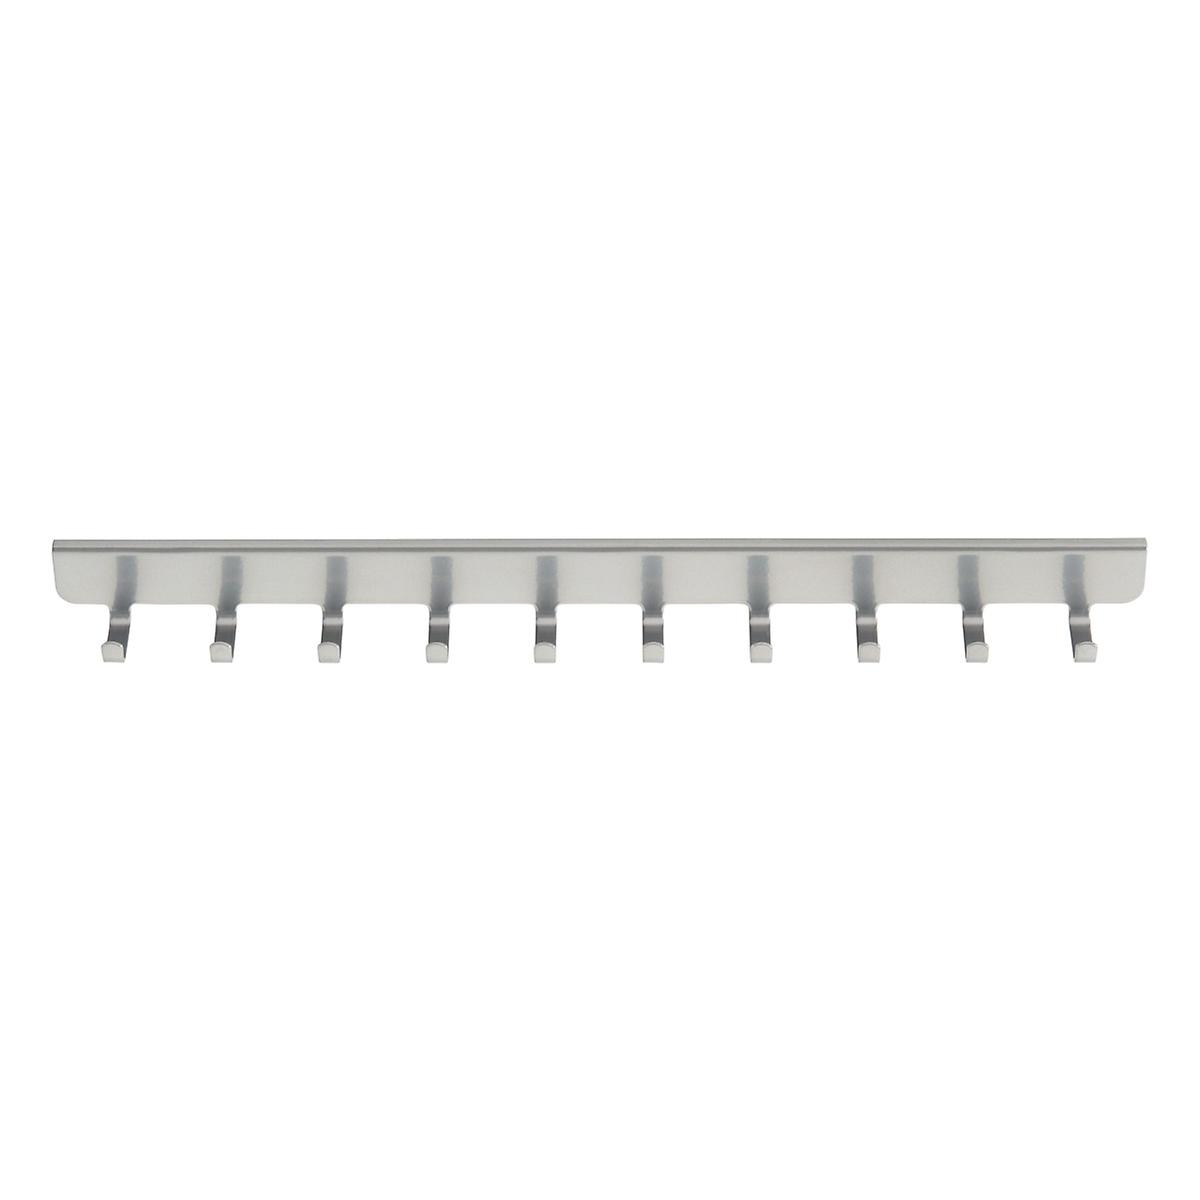 Platinum Elfa Ventilated Wire Shelf Bracket Hooks | The Container Store